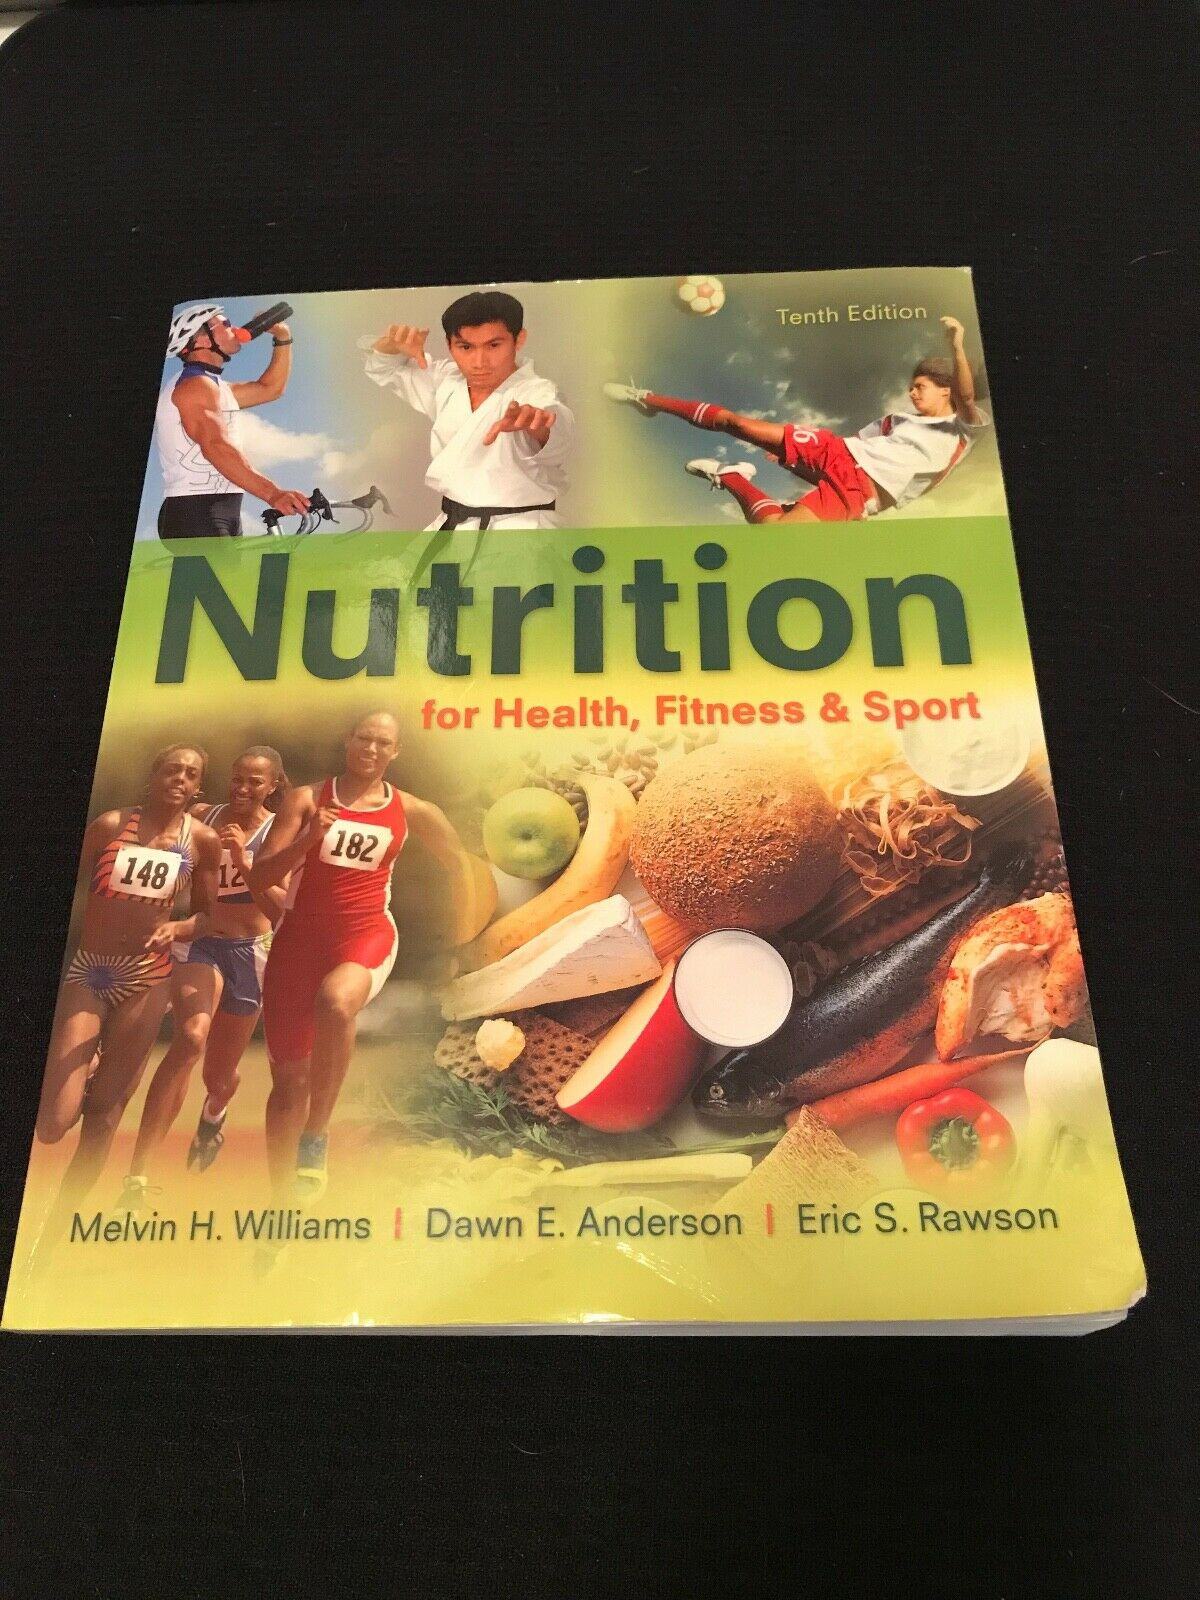 Nutrition for Health, Fitness and Sport isbn 978-0-07802132-9 1